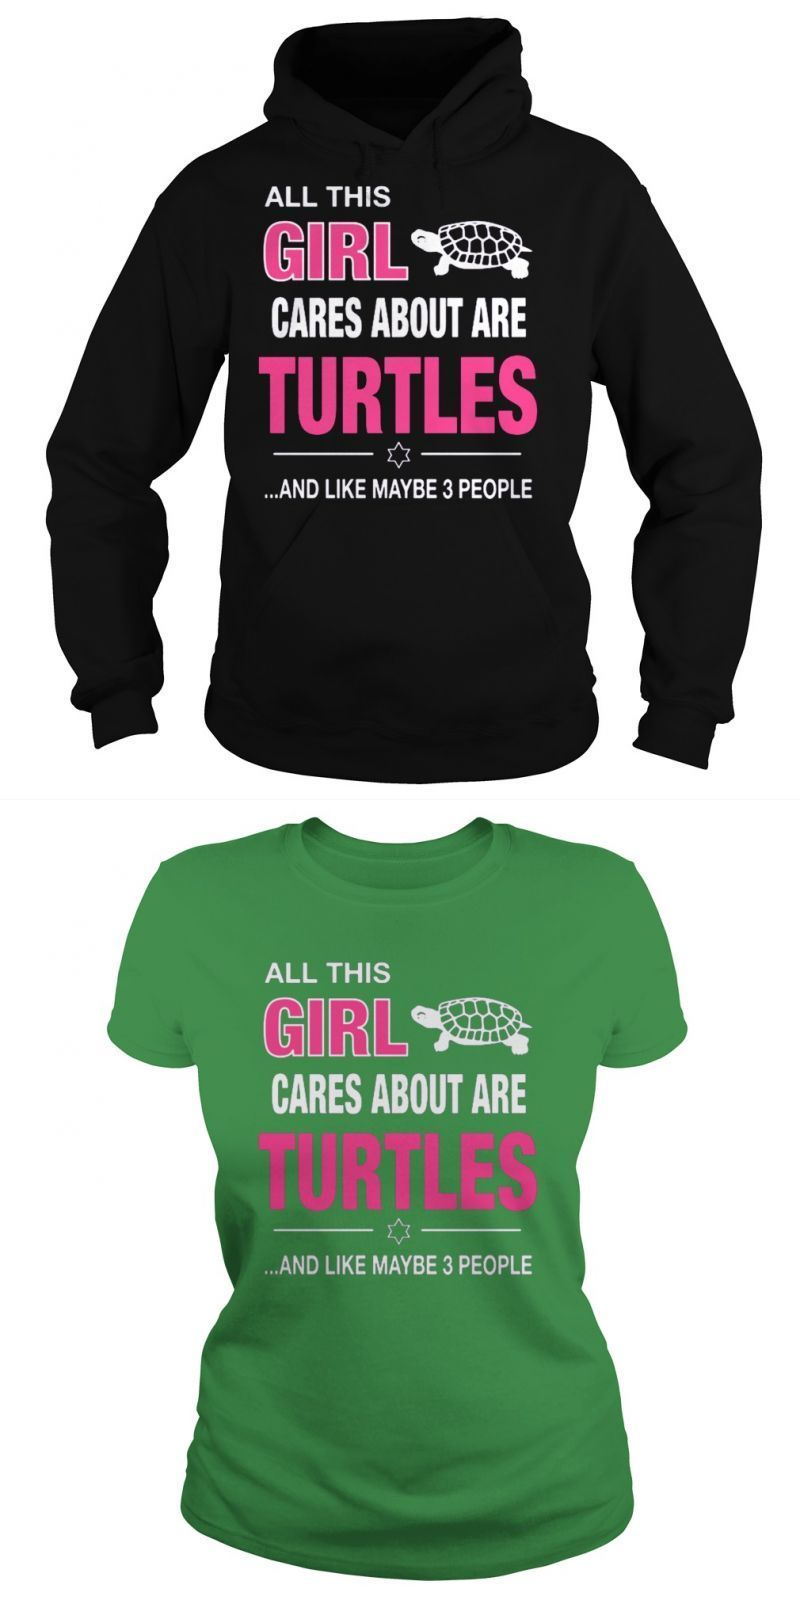 177d3ec5a Tesco Turtles T Shirt All This Girl Cares About Are Turtles #ninja #turtles  #